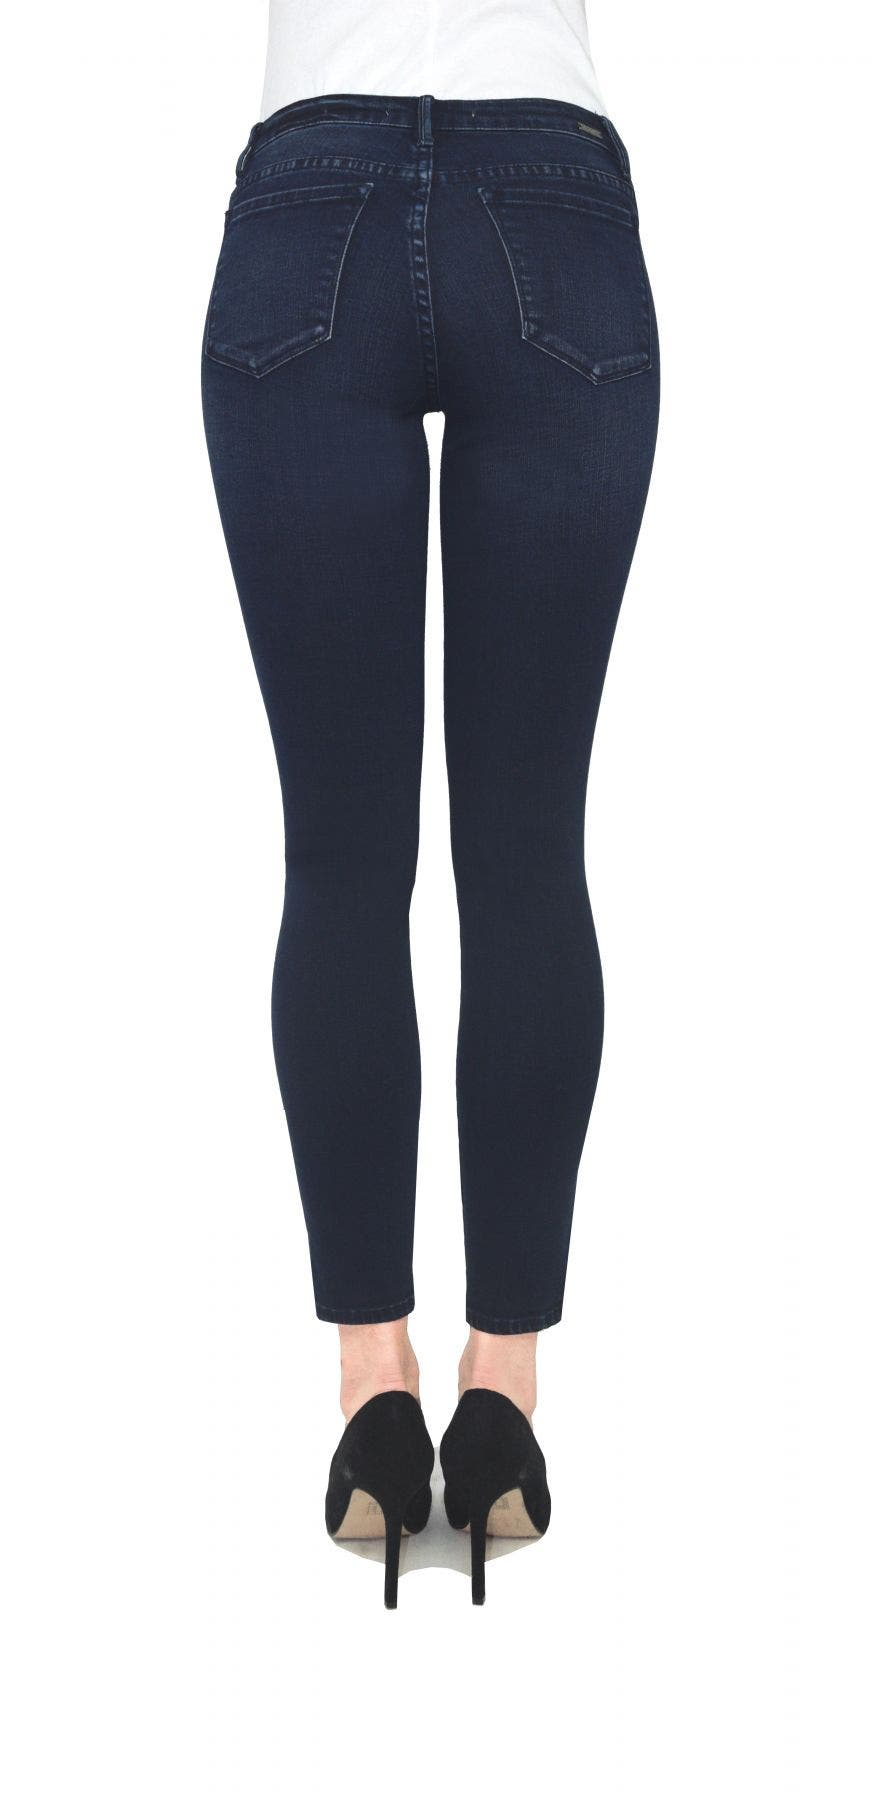 Tractr Jeans 5 Pocket Mid-Rise Skinny